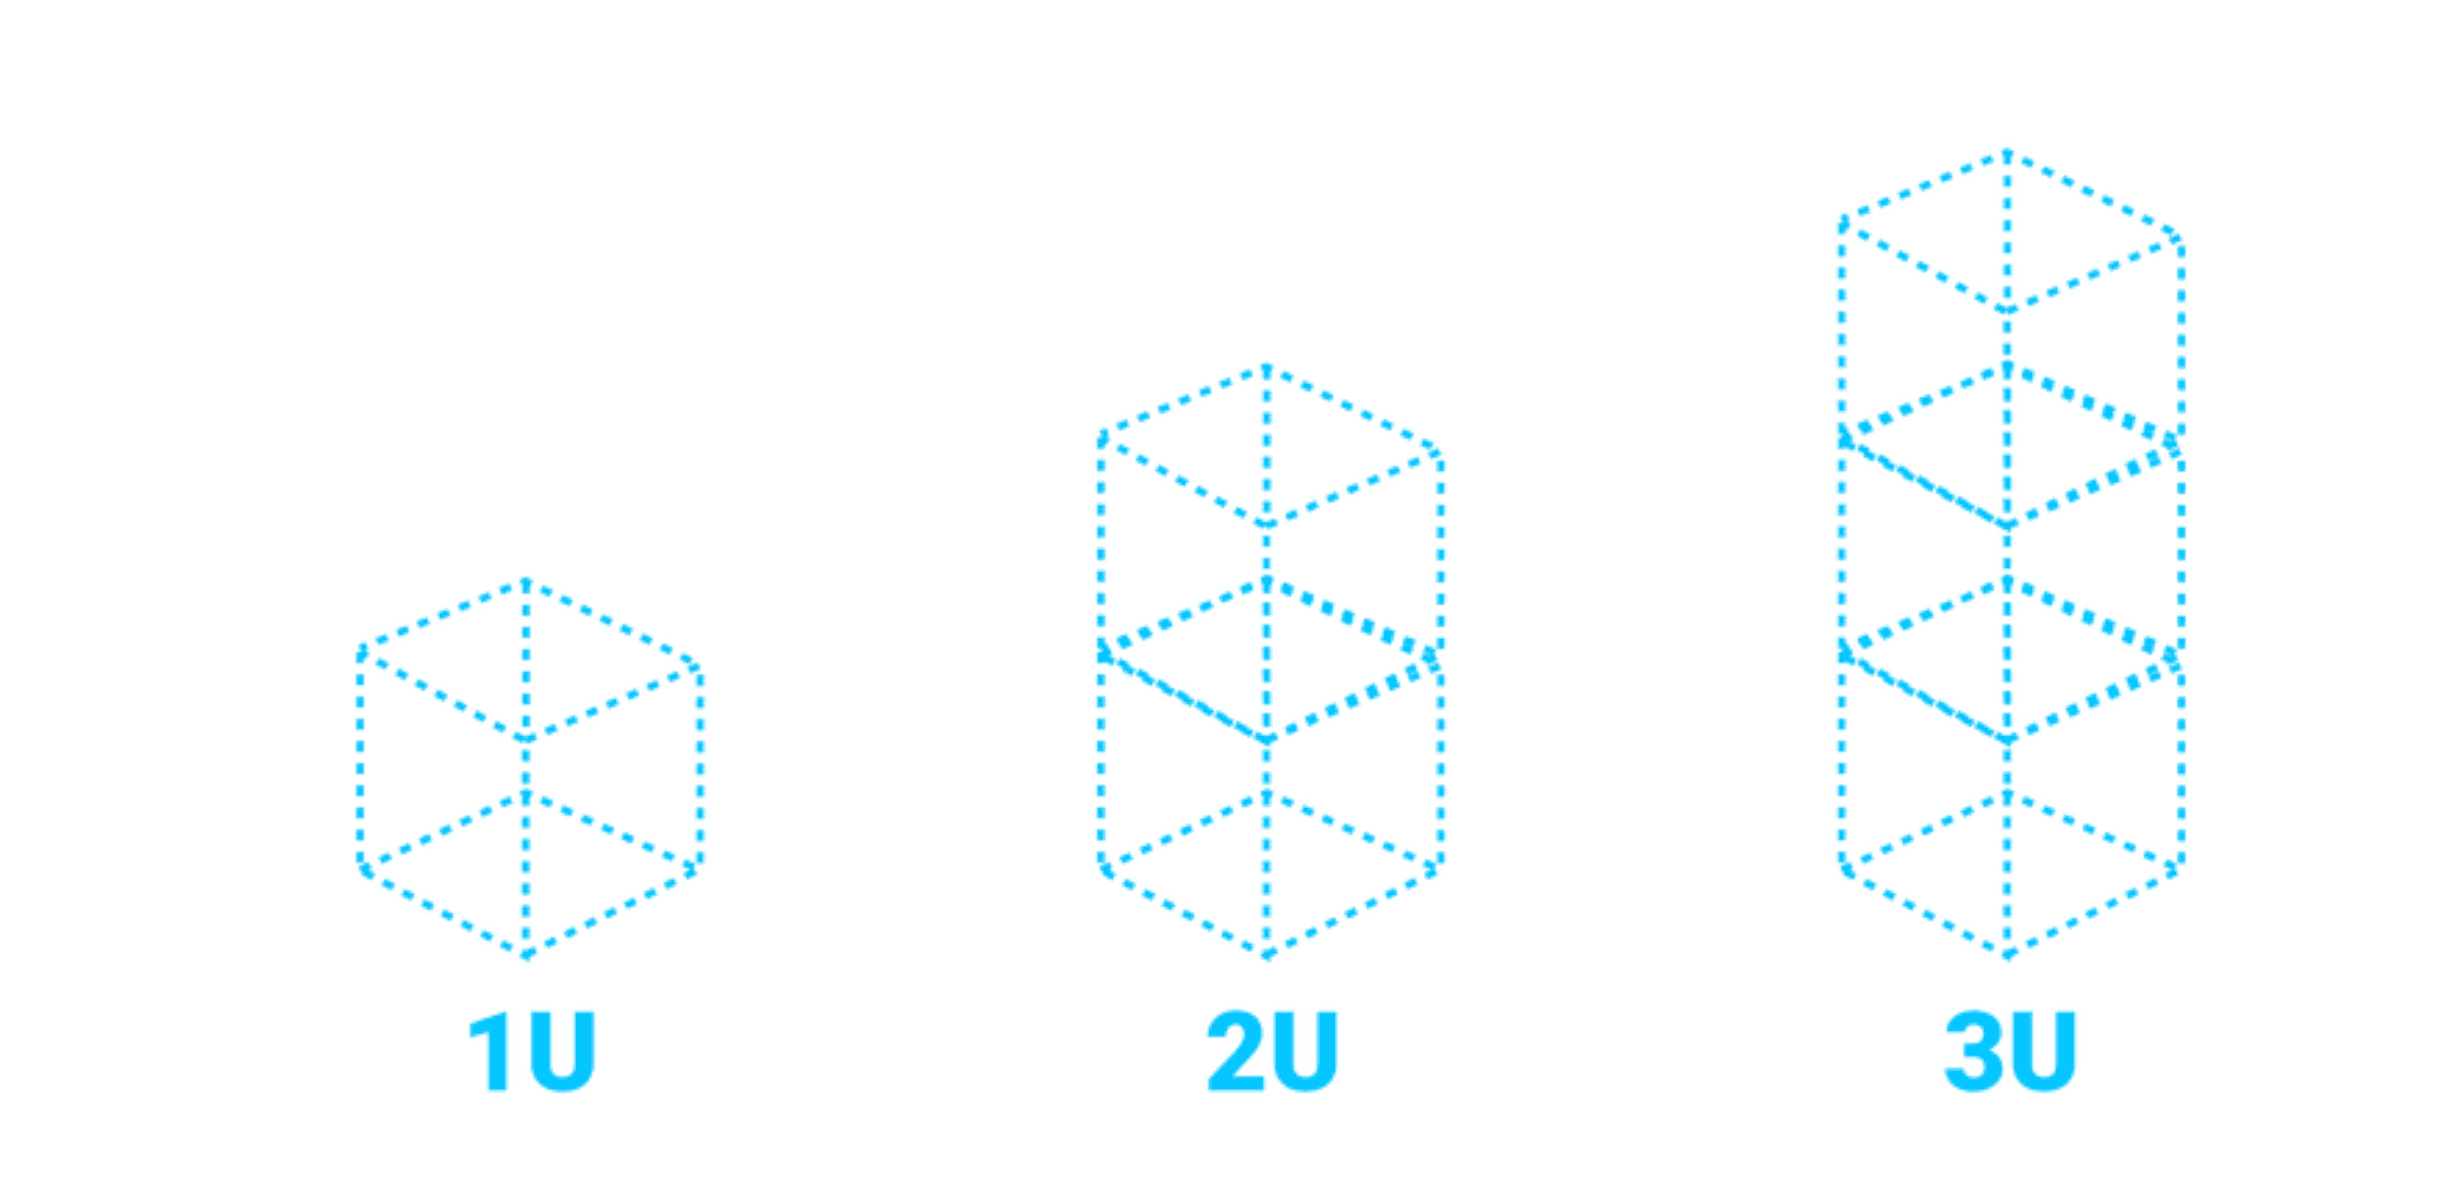 One 'U' (or unit) is the smallest building block of a cubesat. However, these Us can be stacked to create larger satellites with more room for internal payloads.